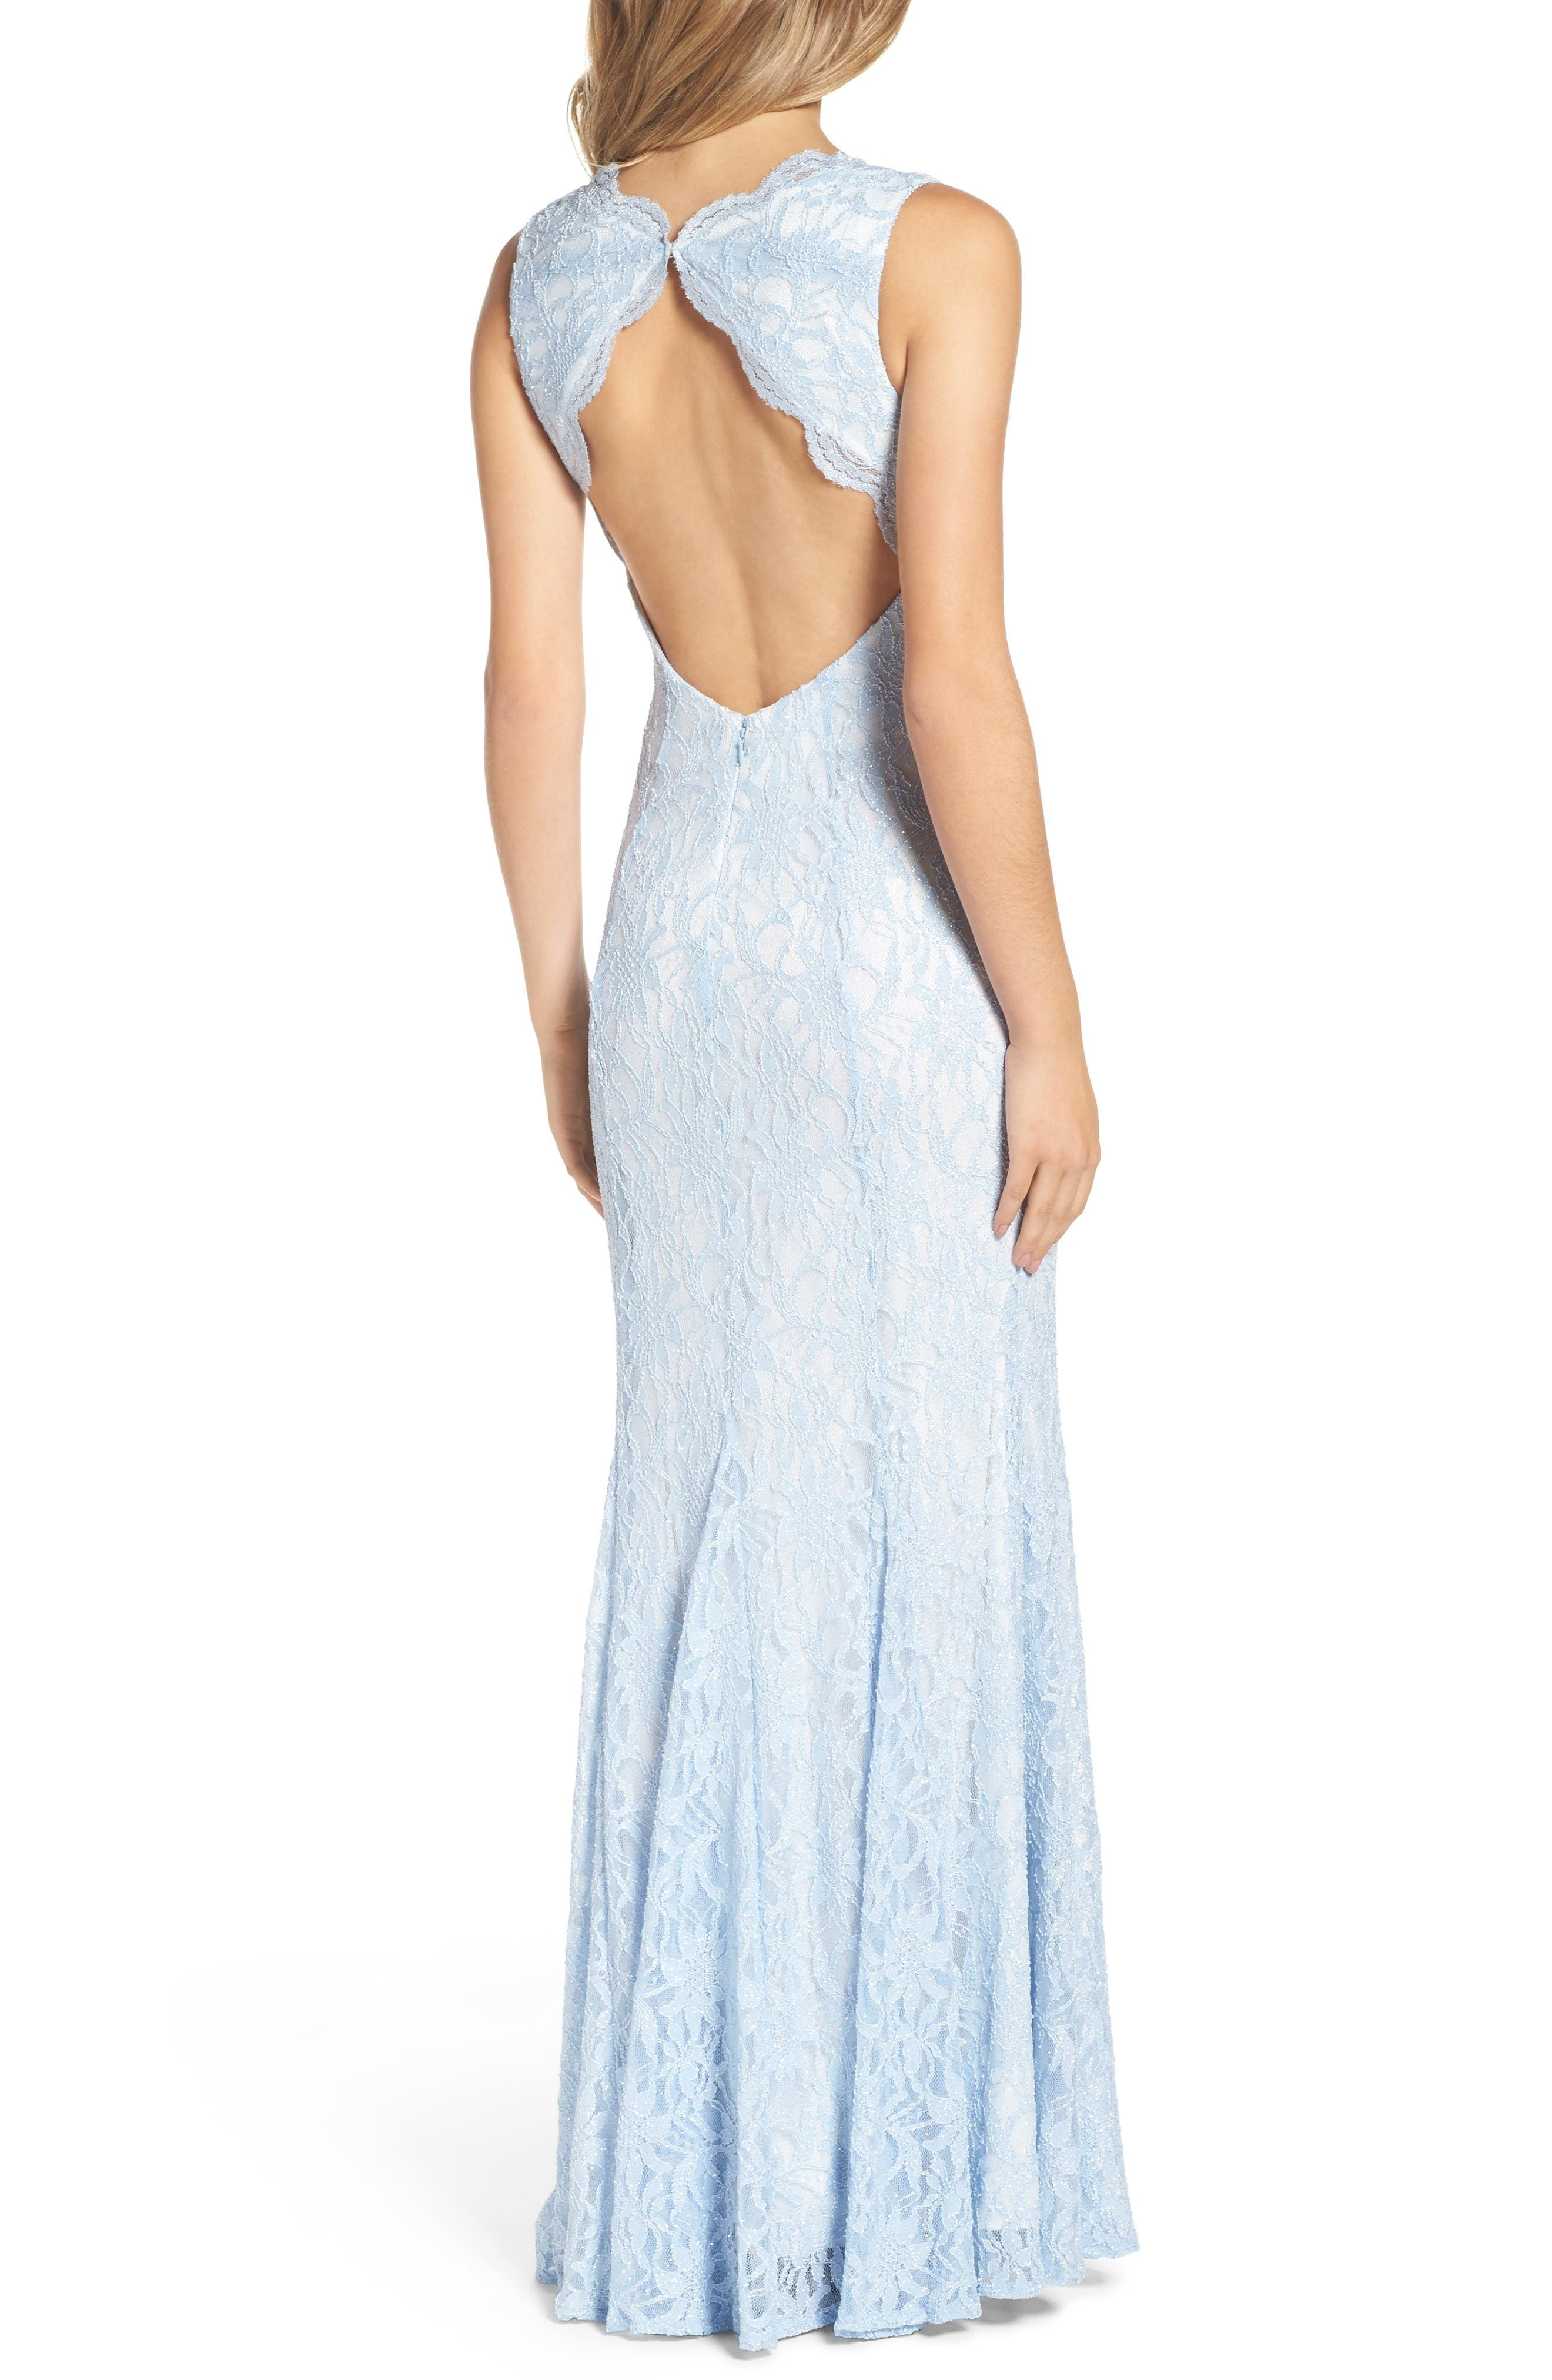 Glitter Lace Gown,                             Alternate thumbnail 2, color,                             Ice Blue/ Ivory